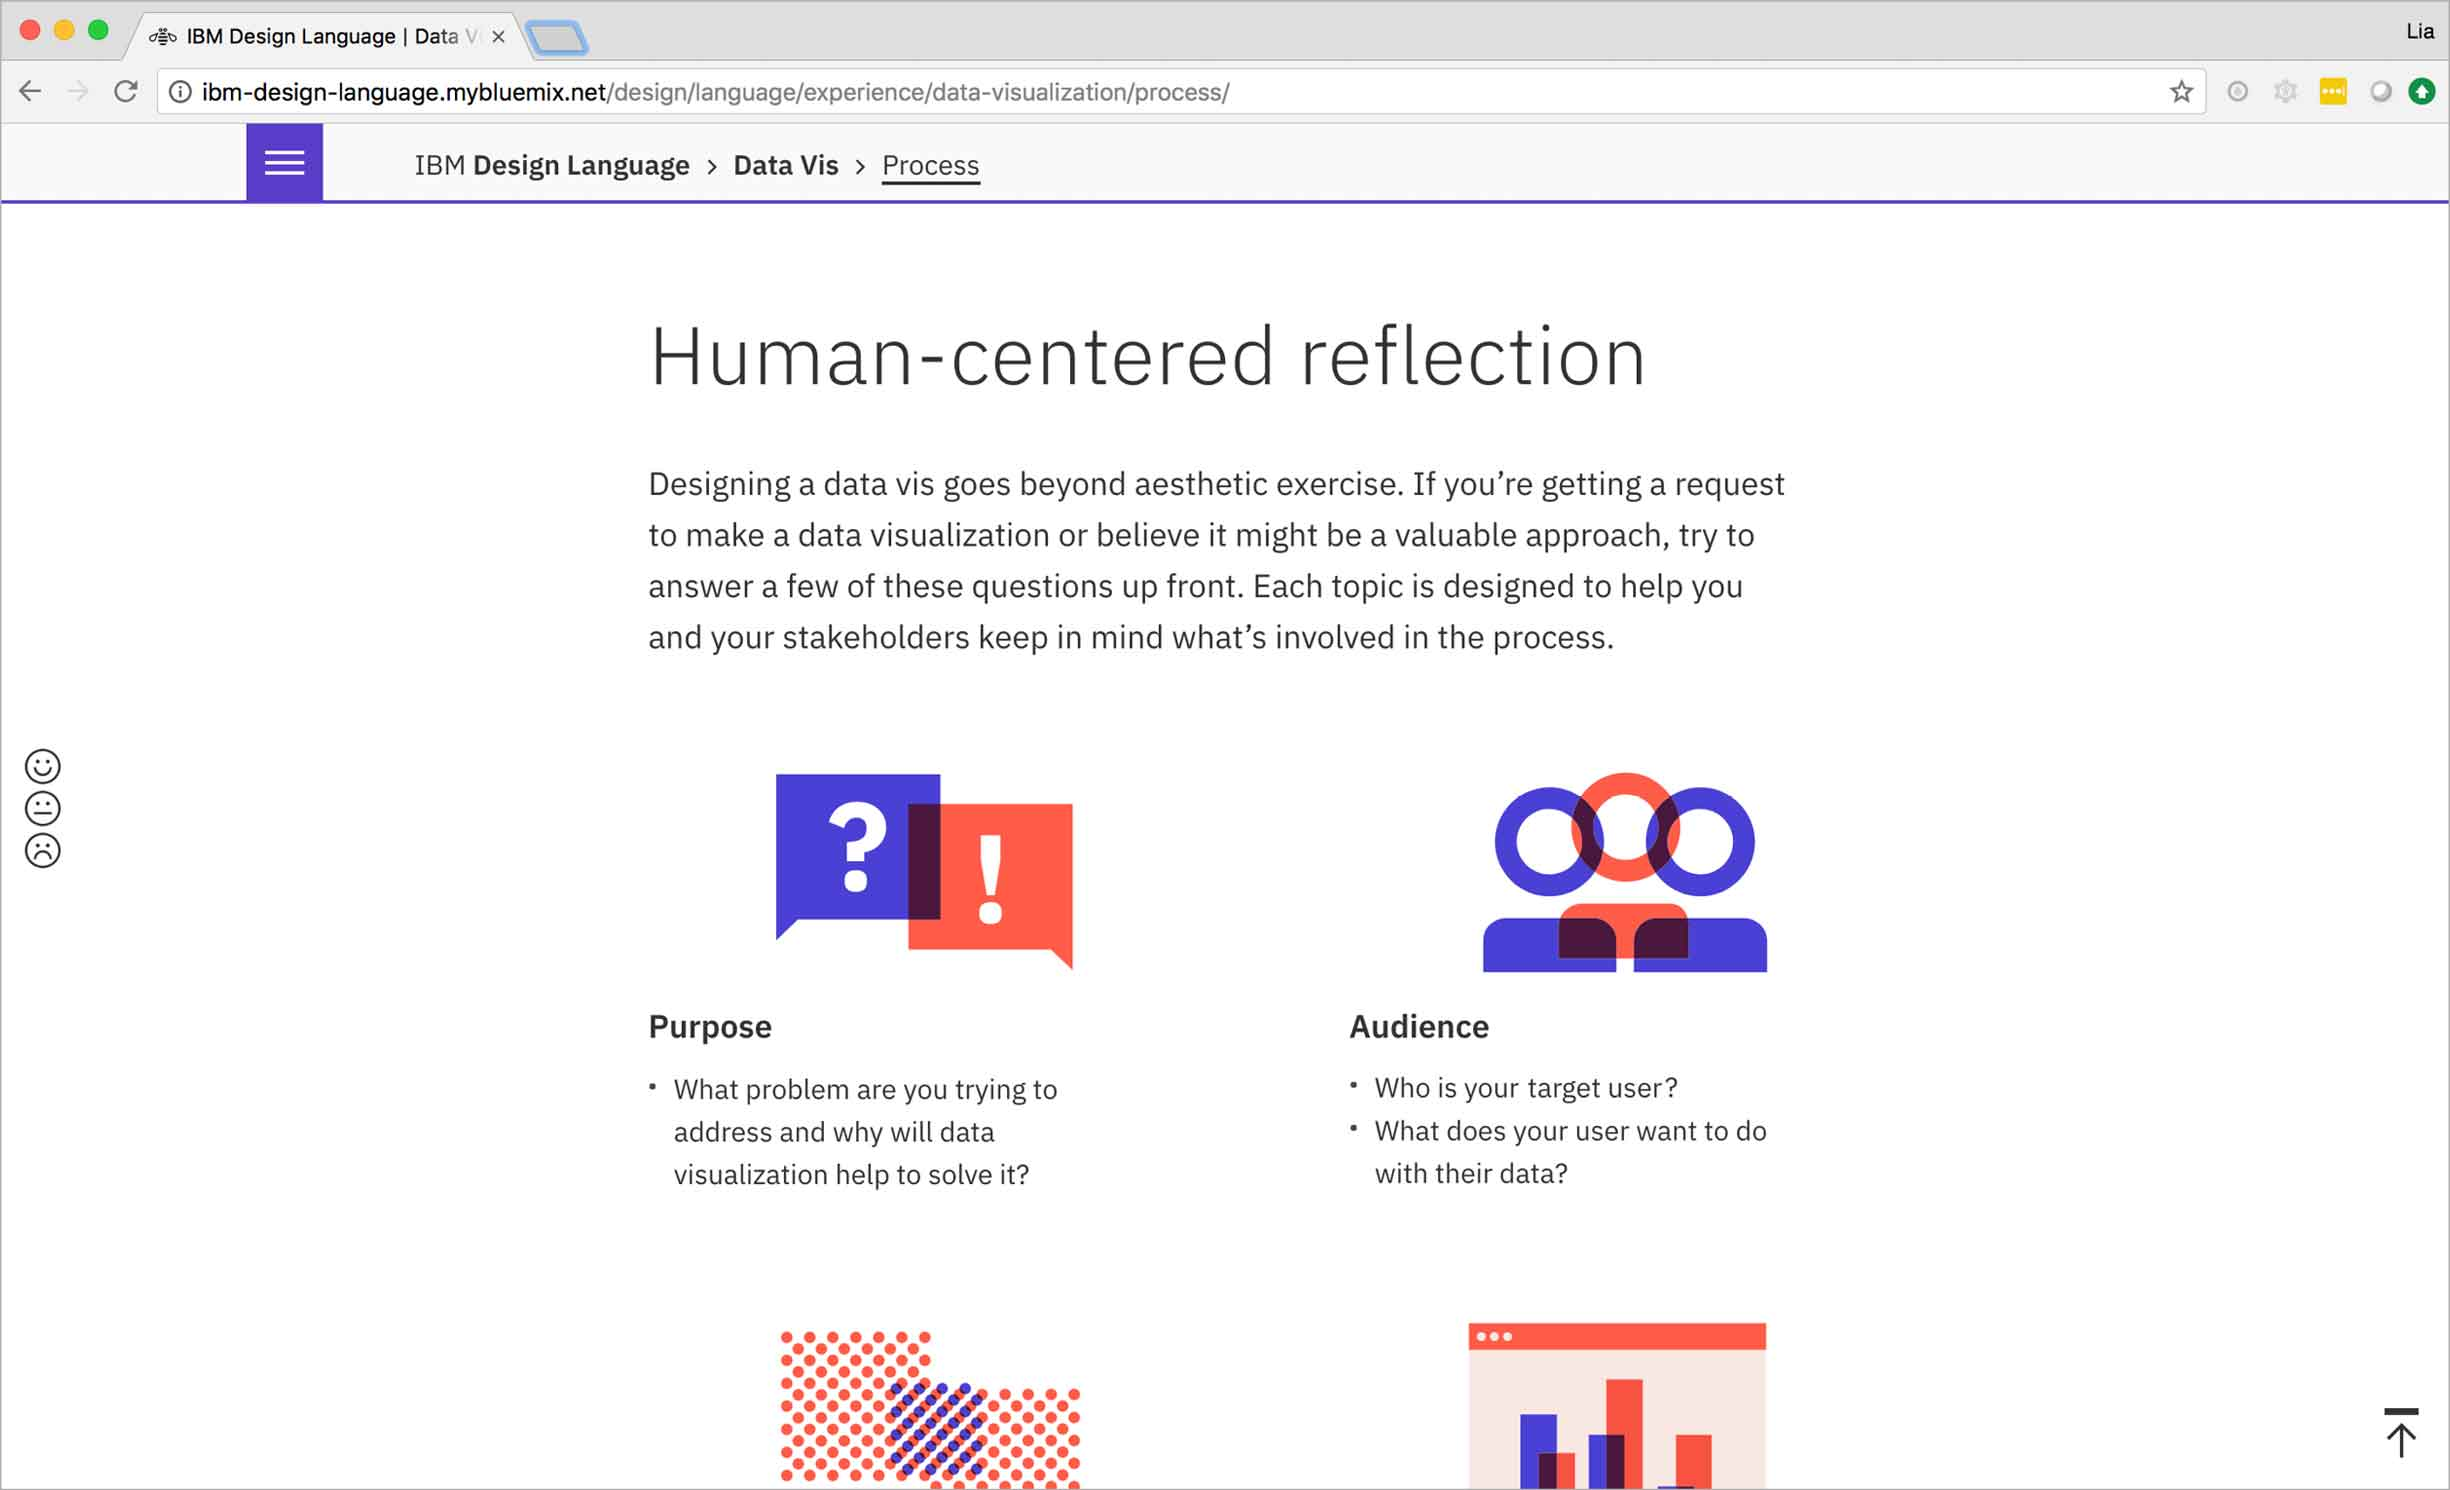 The principles section of the IBM Data Vis Design Language focuses on human-centered reflection.